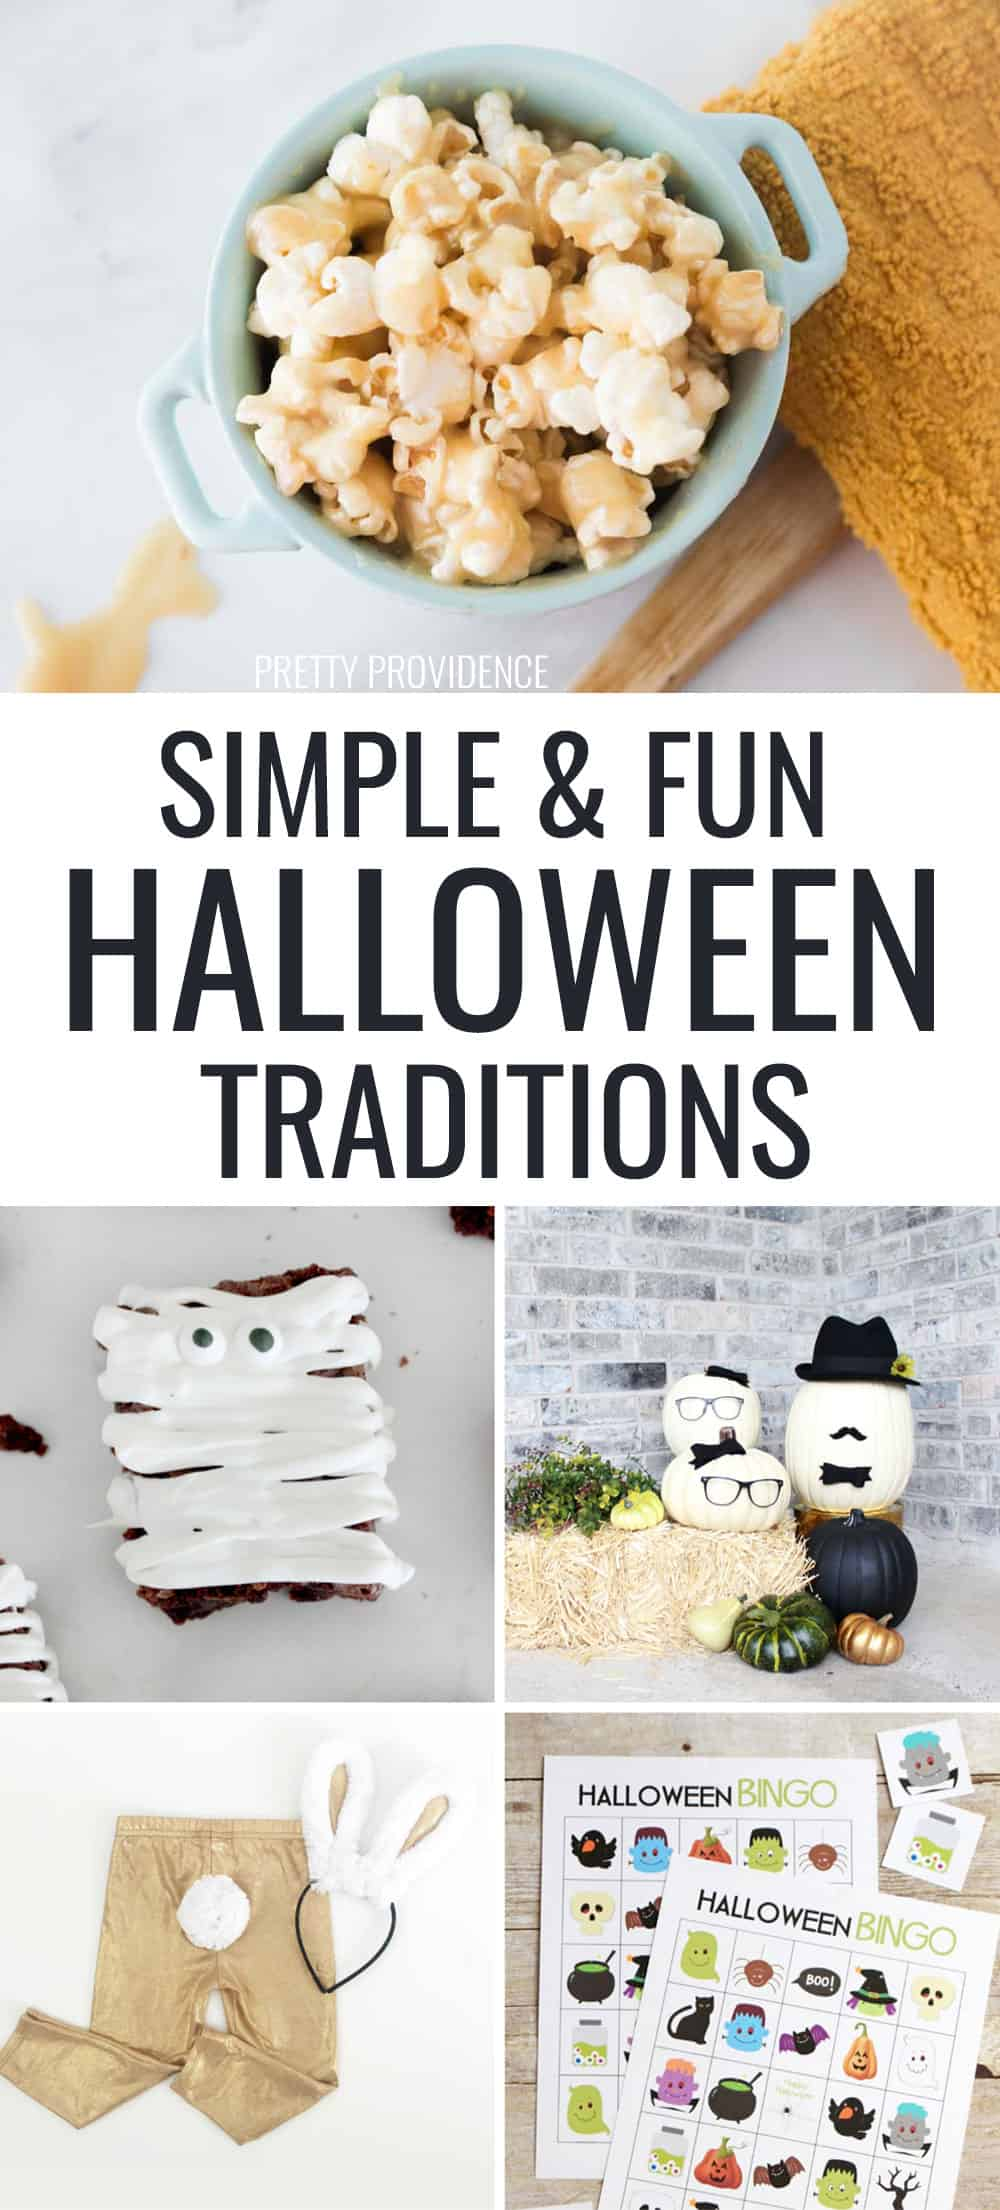 Fun Halloween traditions to do with your kids or with family & friends! Halloween treats, activities to do and more!